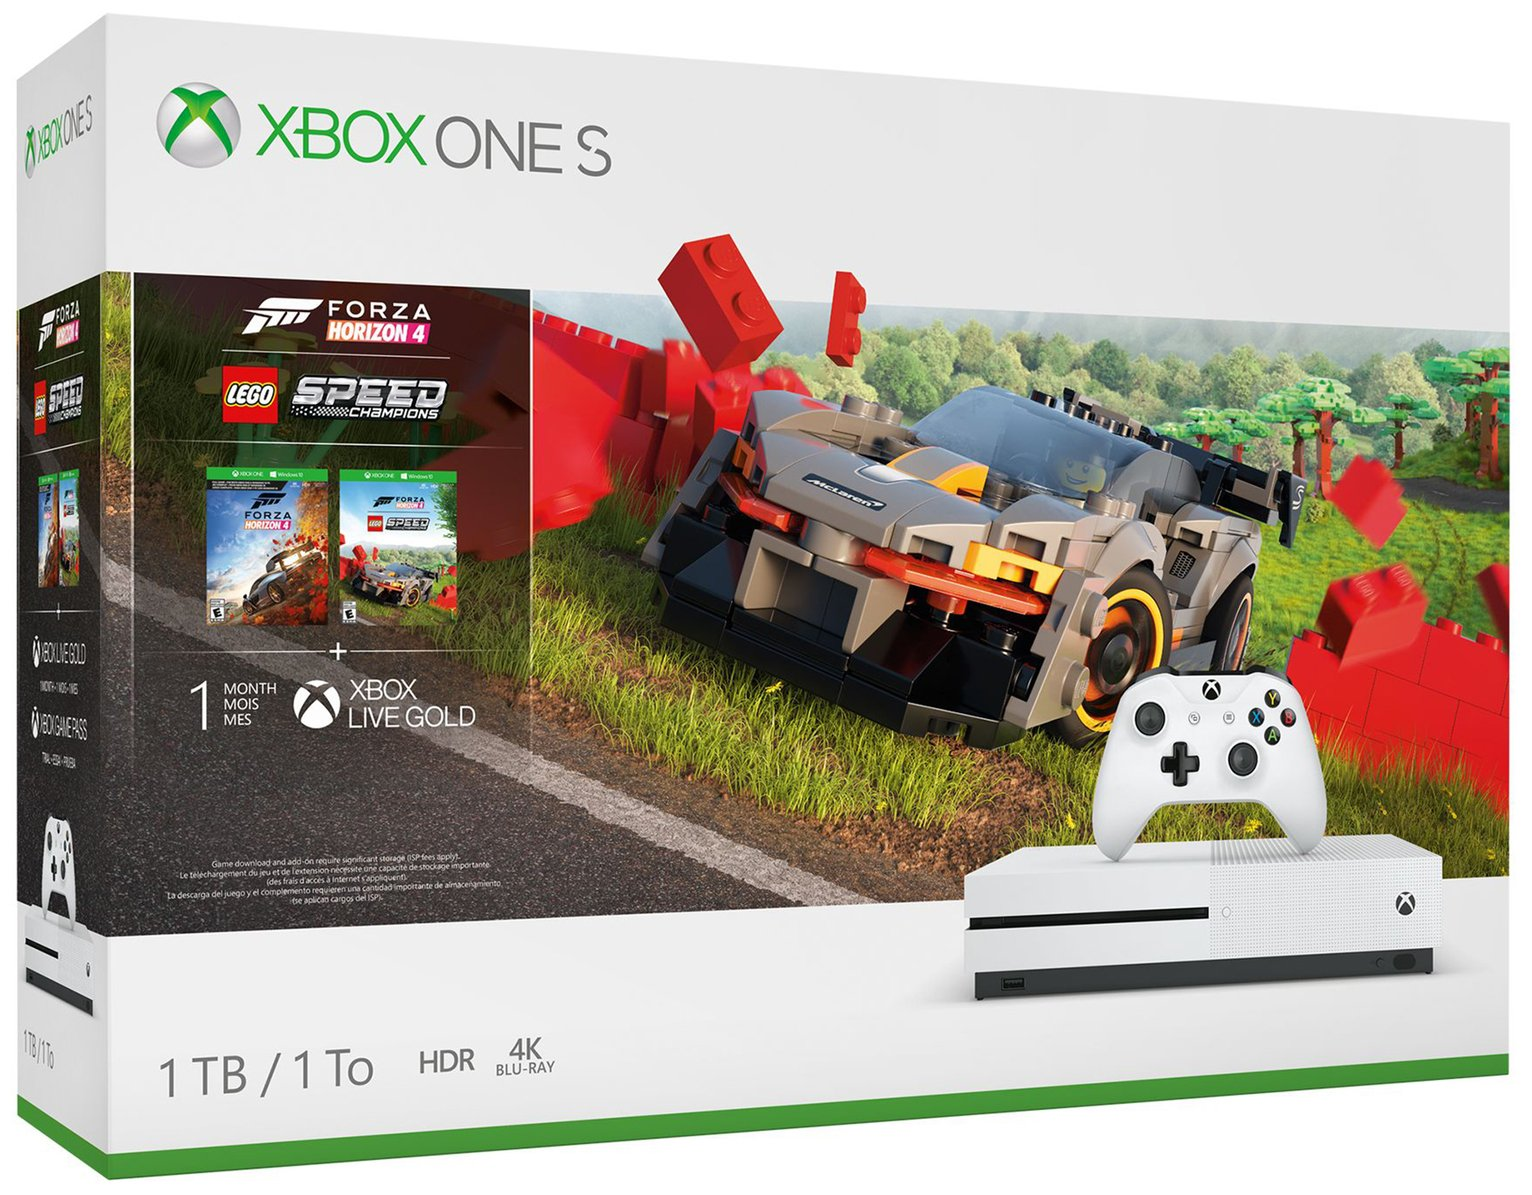 Xbox One S 1TB Console & Forza Horizon 4 LEGO Speed Bundle